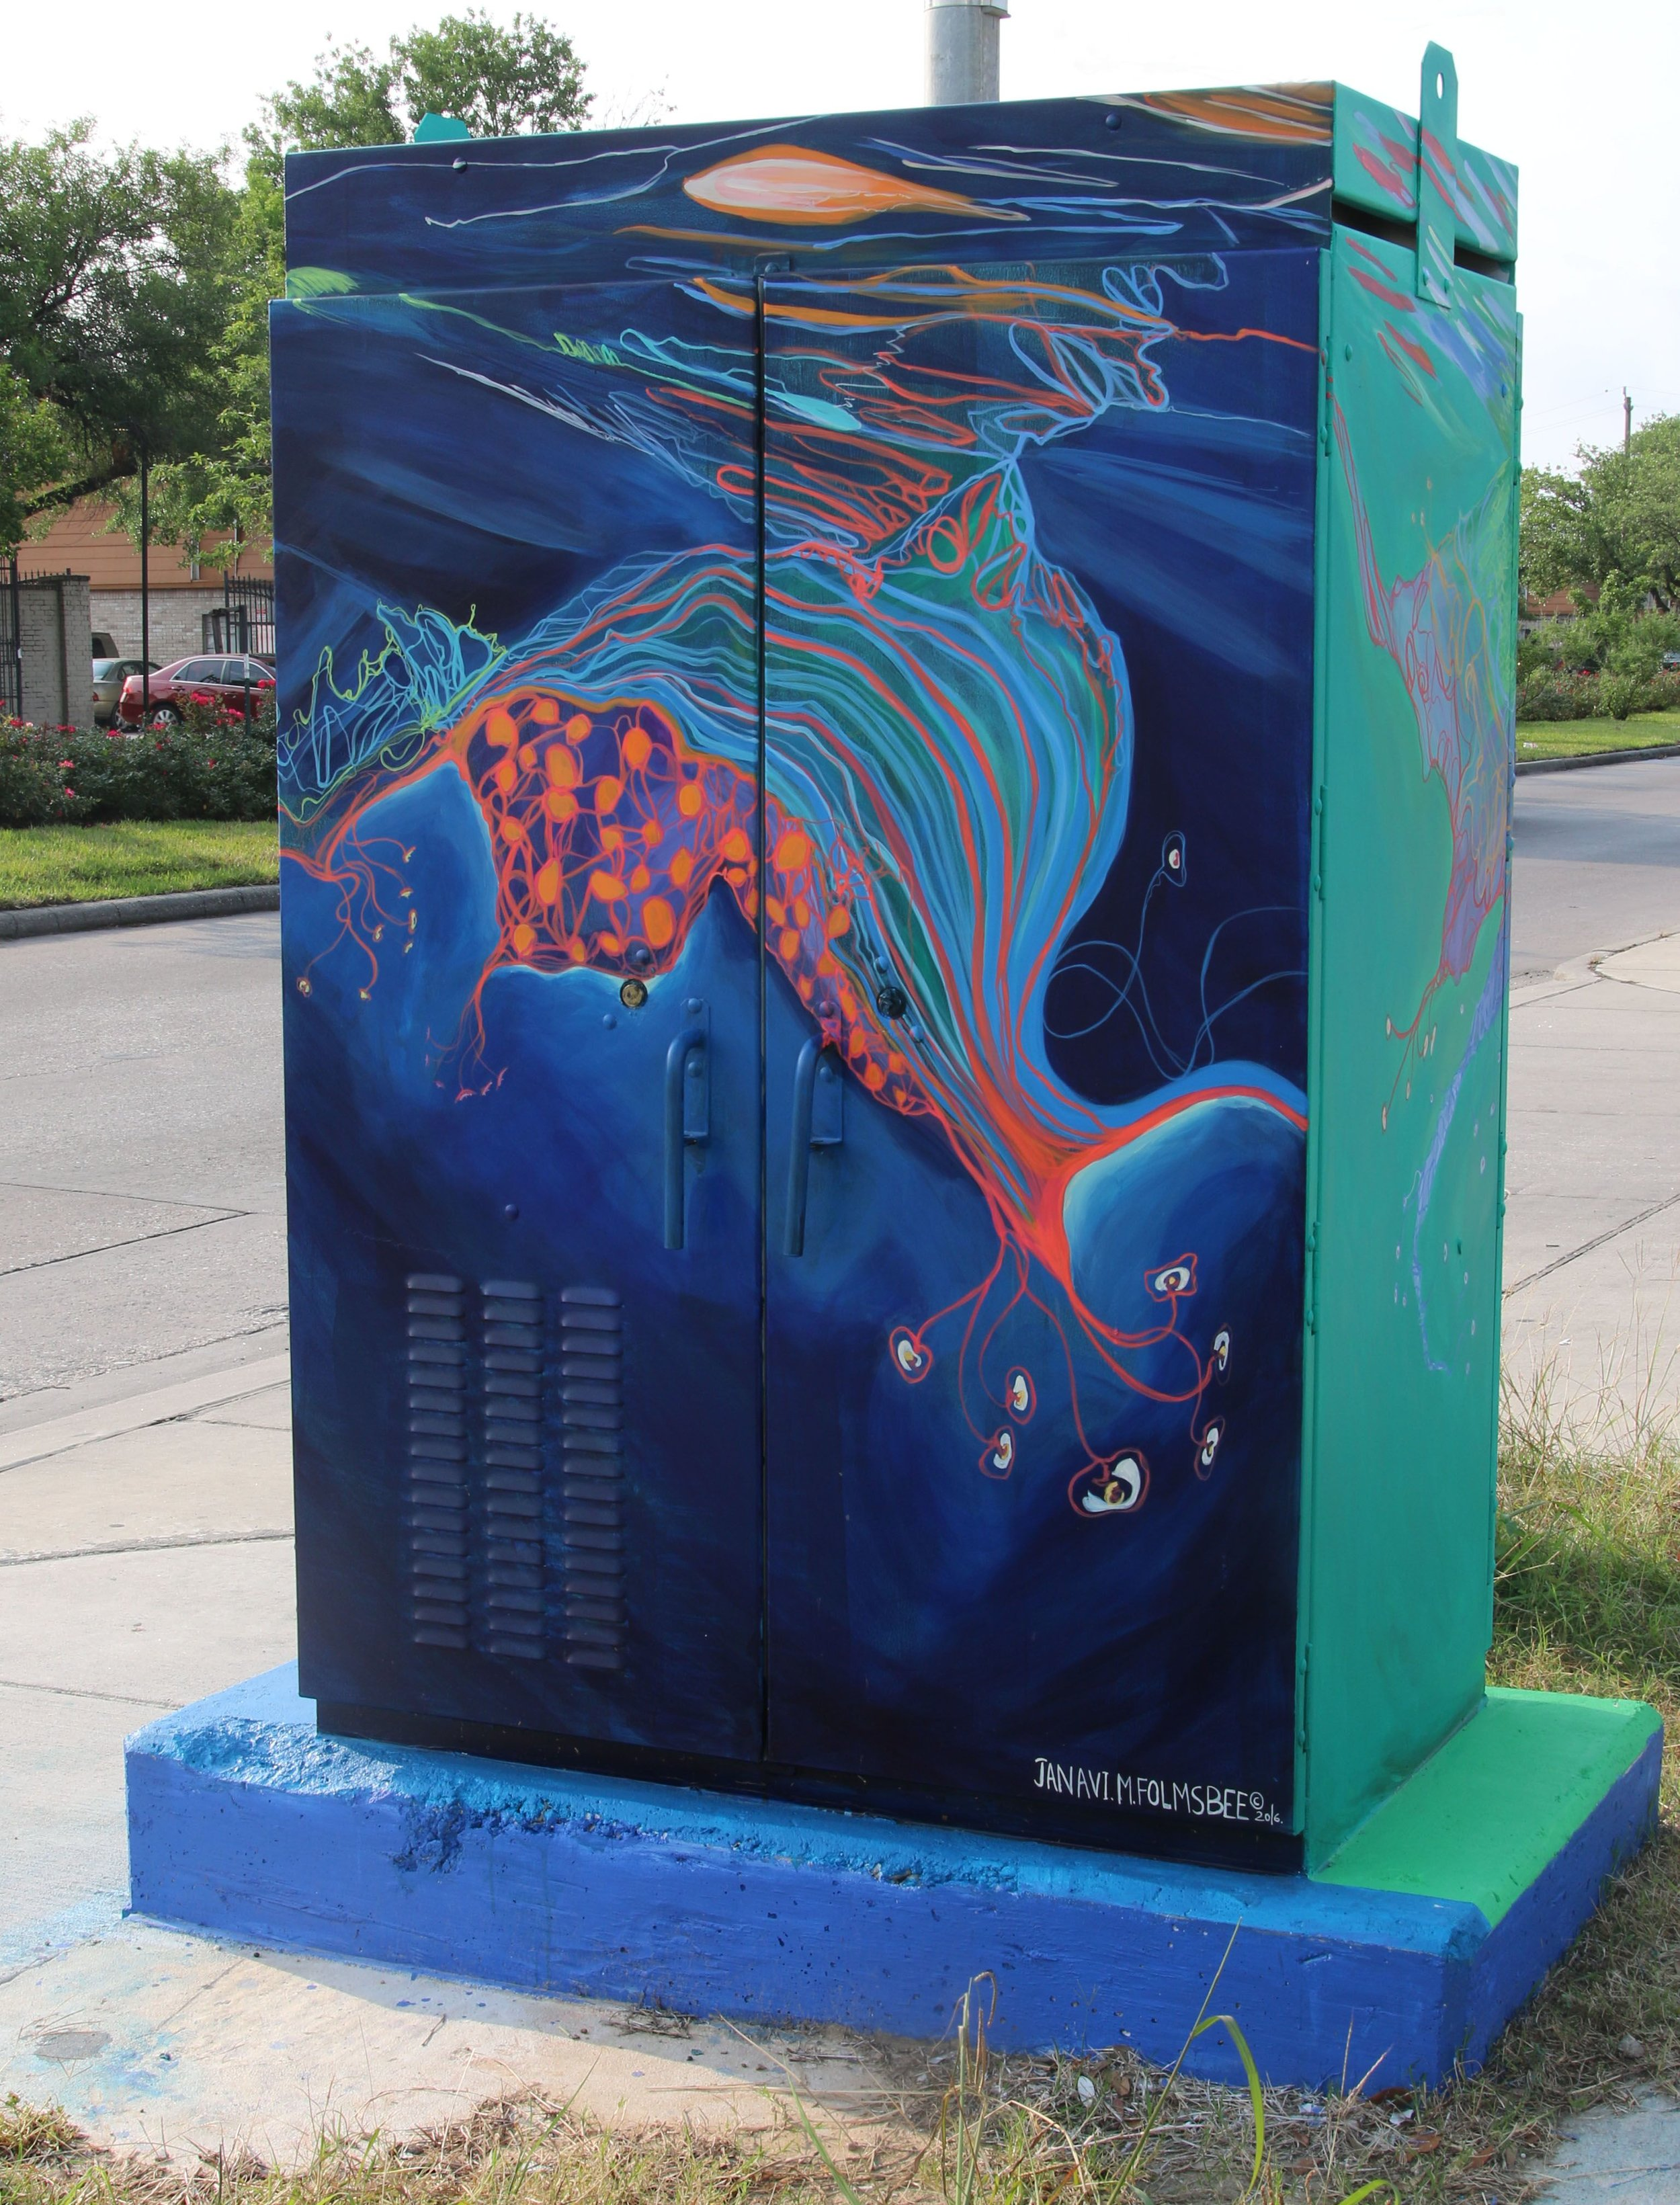 2016 Light by night and Day, Mini Mural in Houston, ( This was the first public work I did in Houston, it has a bullet hole in it and is located in Greens point, Ella & Dyna)